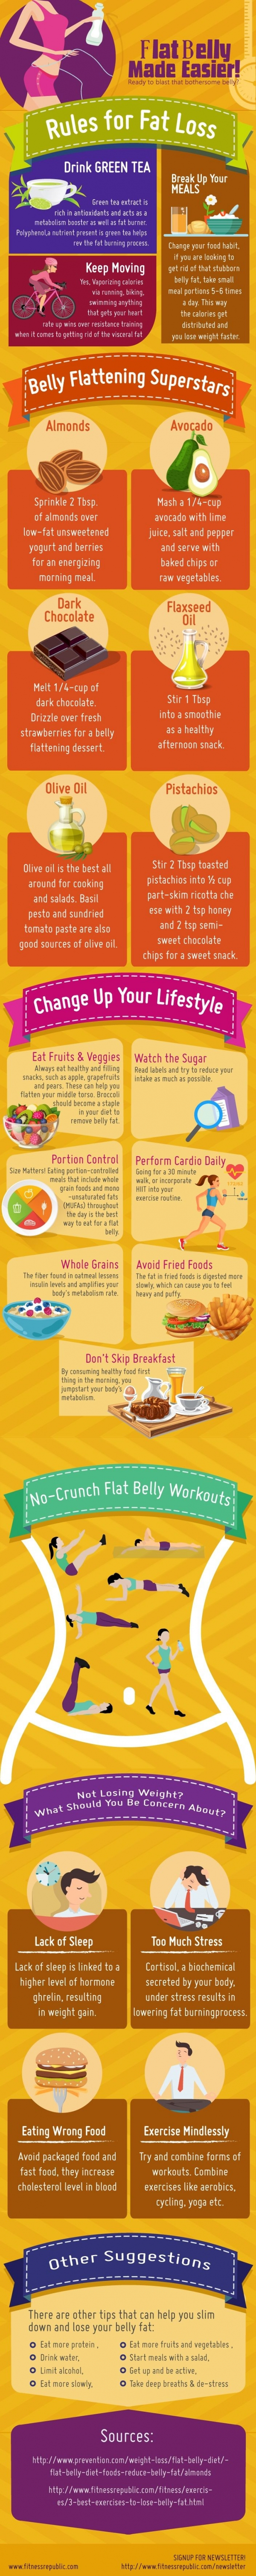 Tips for Attaining a Flat Stomach